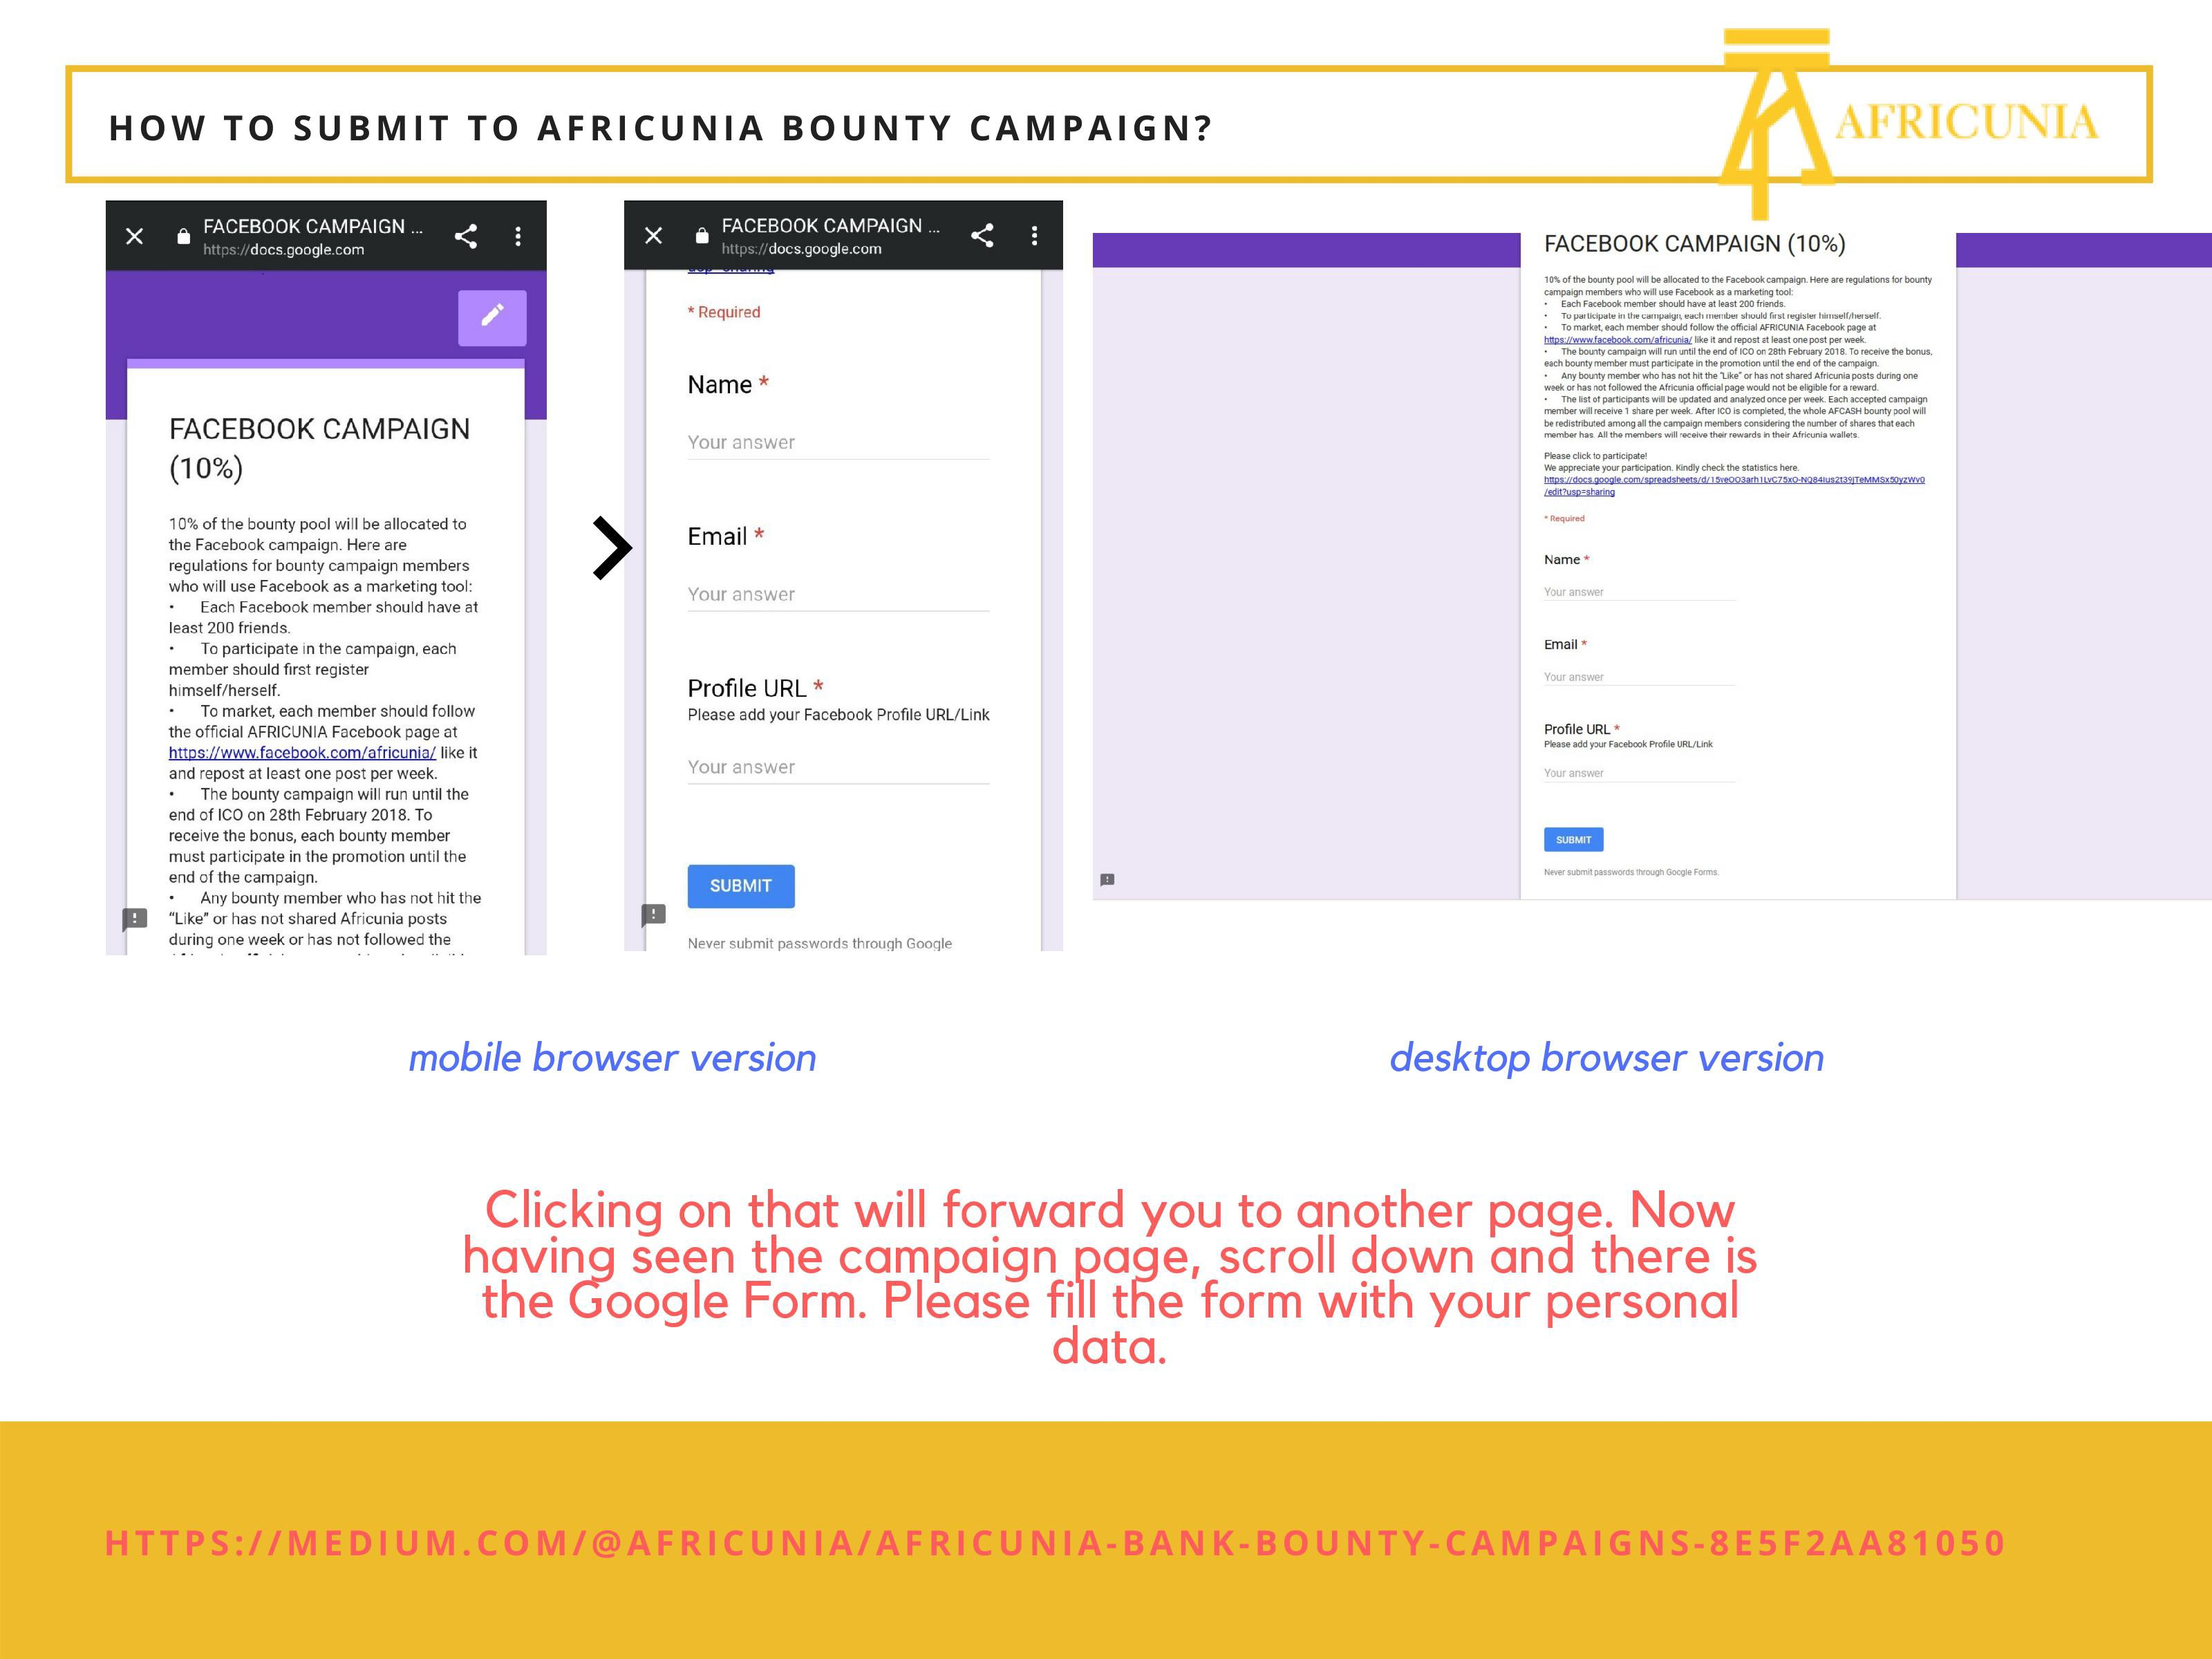 How to submit to Africunia Bounty Campaign? - AFRICUNIA BANK